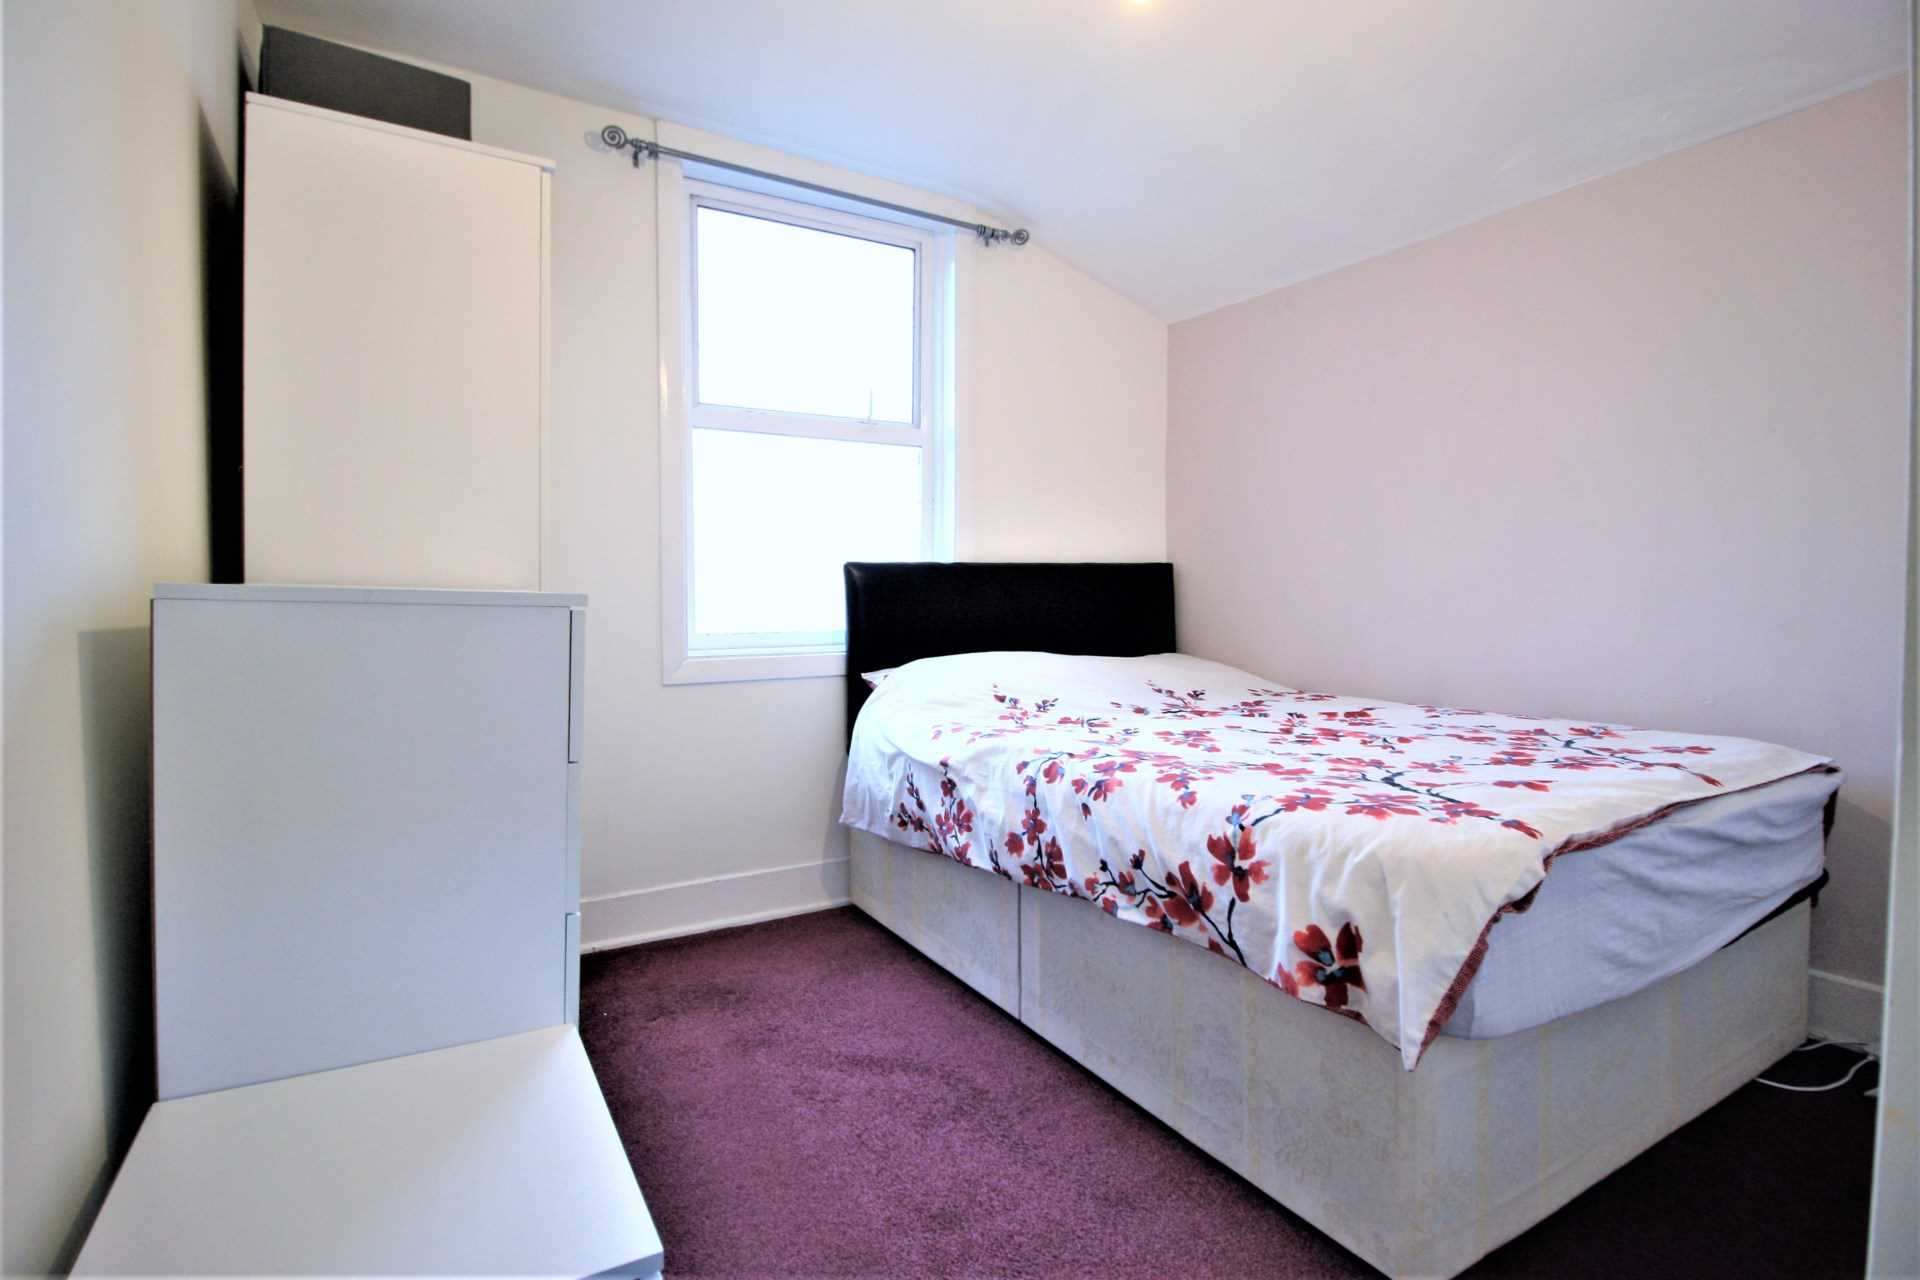 Studley Road, Forest Gate, E7, Image 9